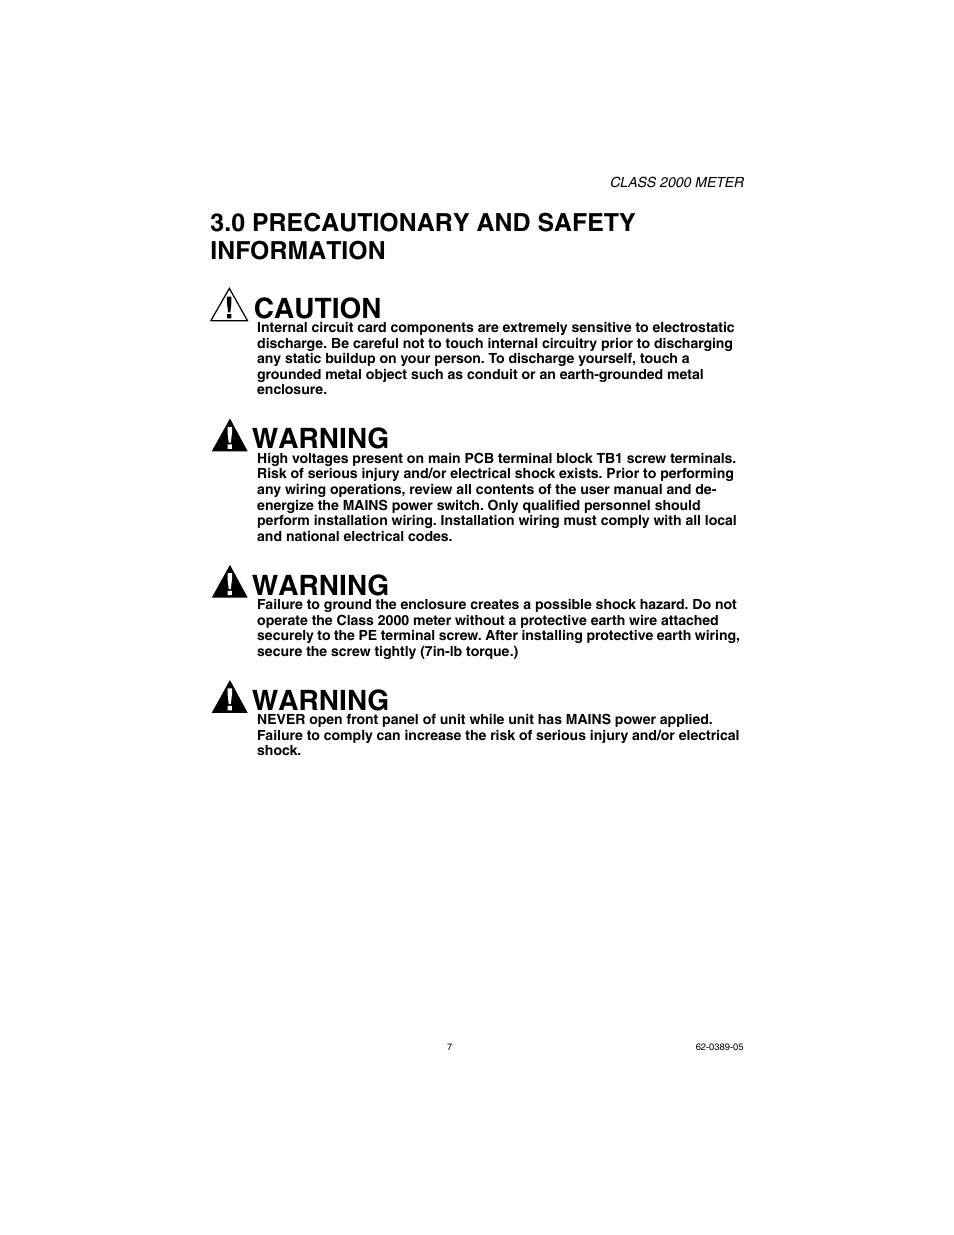 0 precautionary and safety information, caution, warning | e-mon e20-6003200j-d-kit  user manual | page 7 / 52